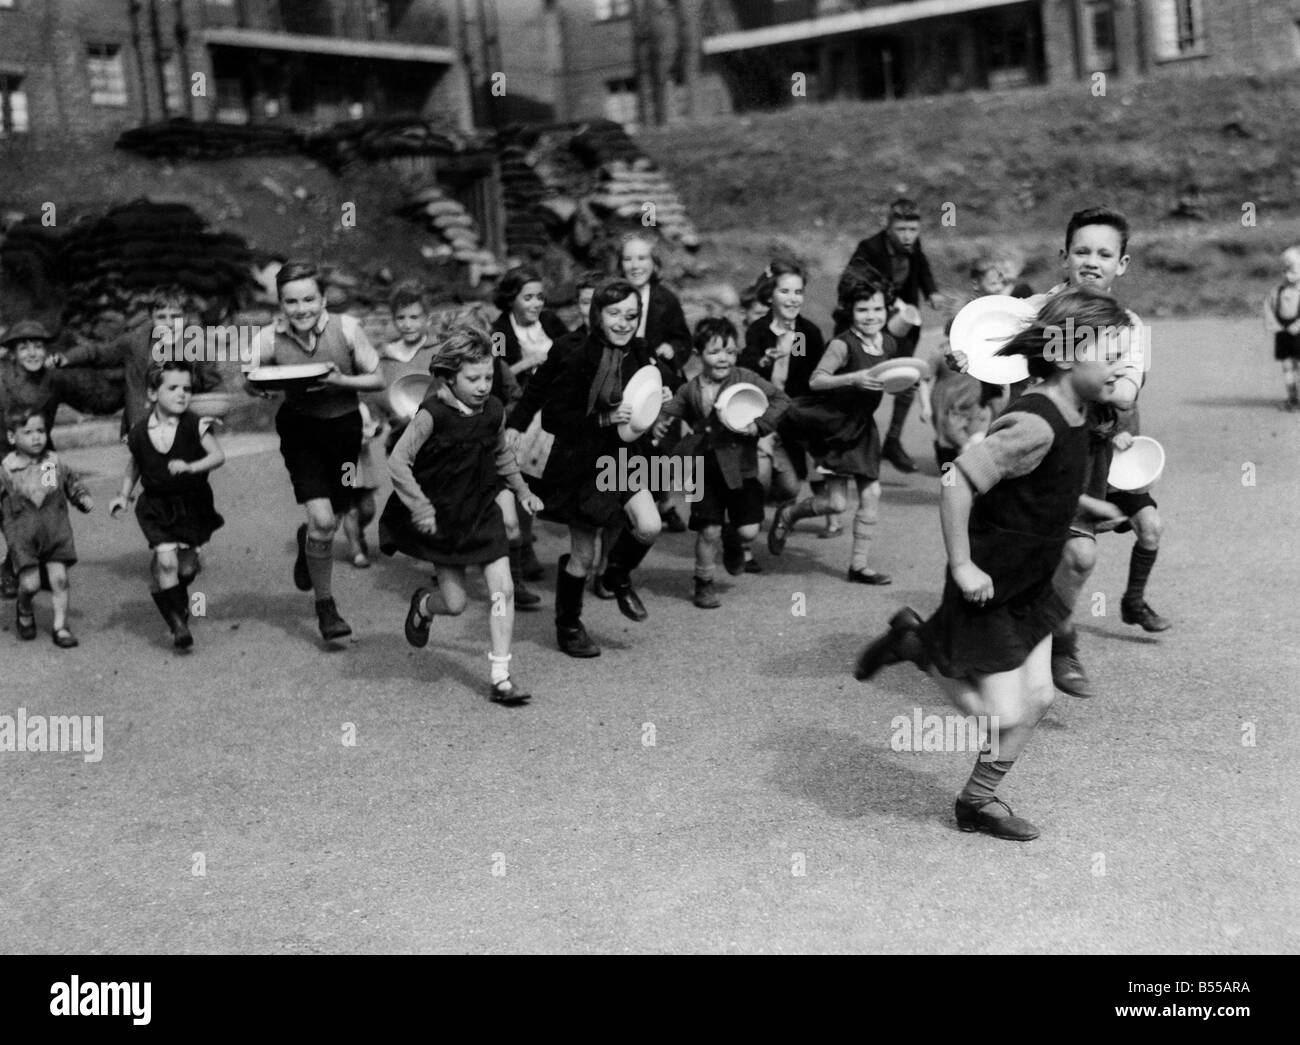 Food glorious food.